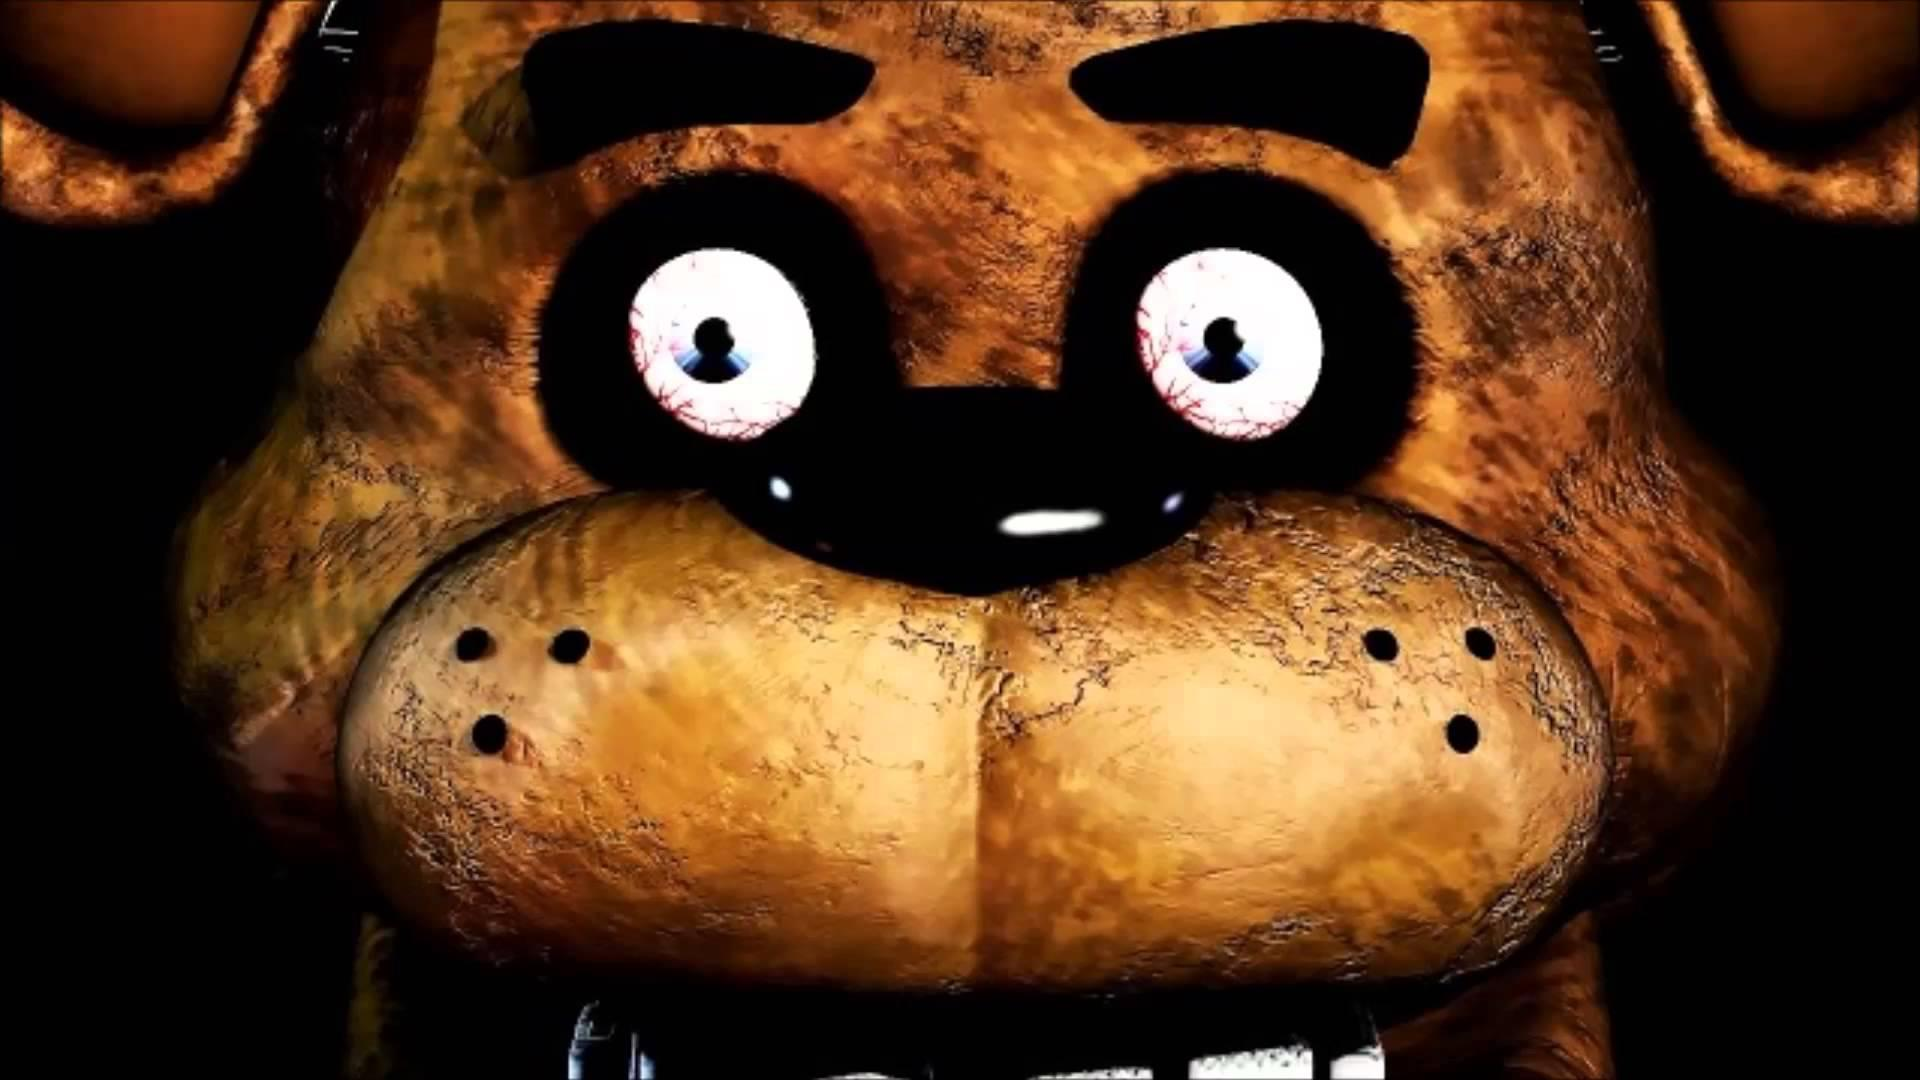 Creepypasta or FNaF?